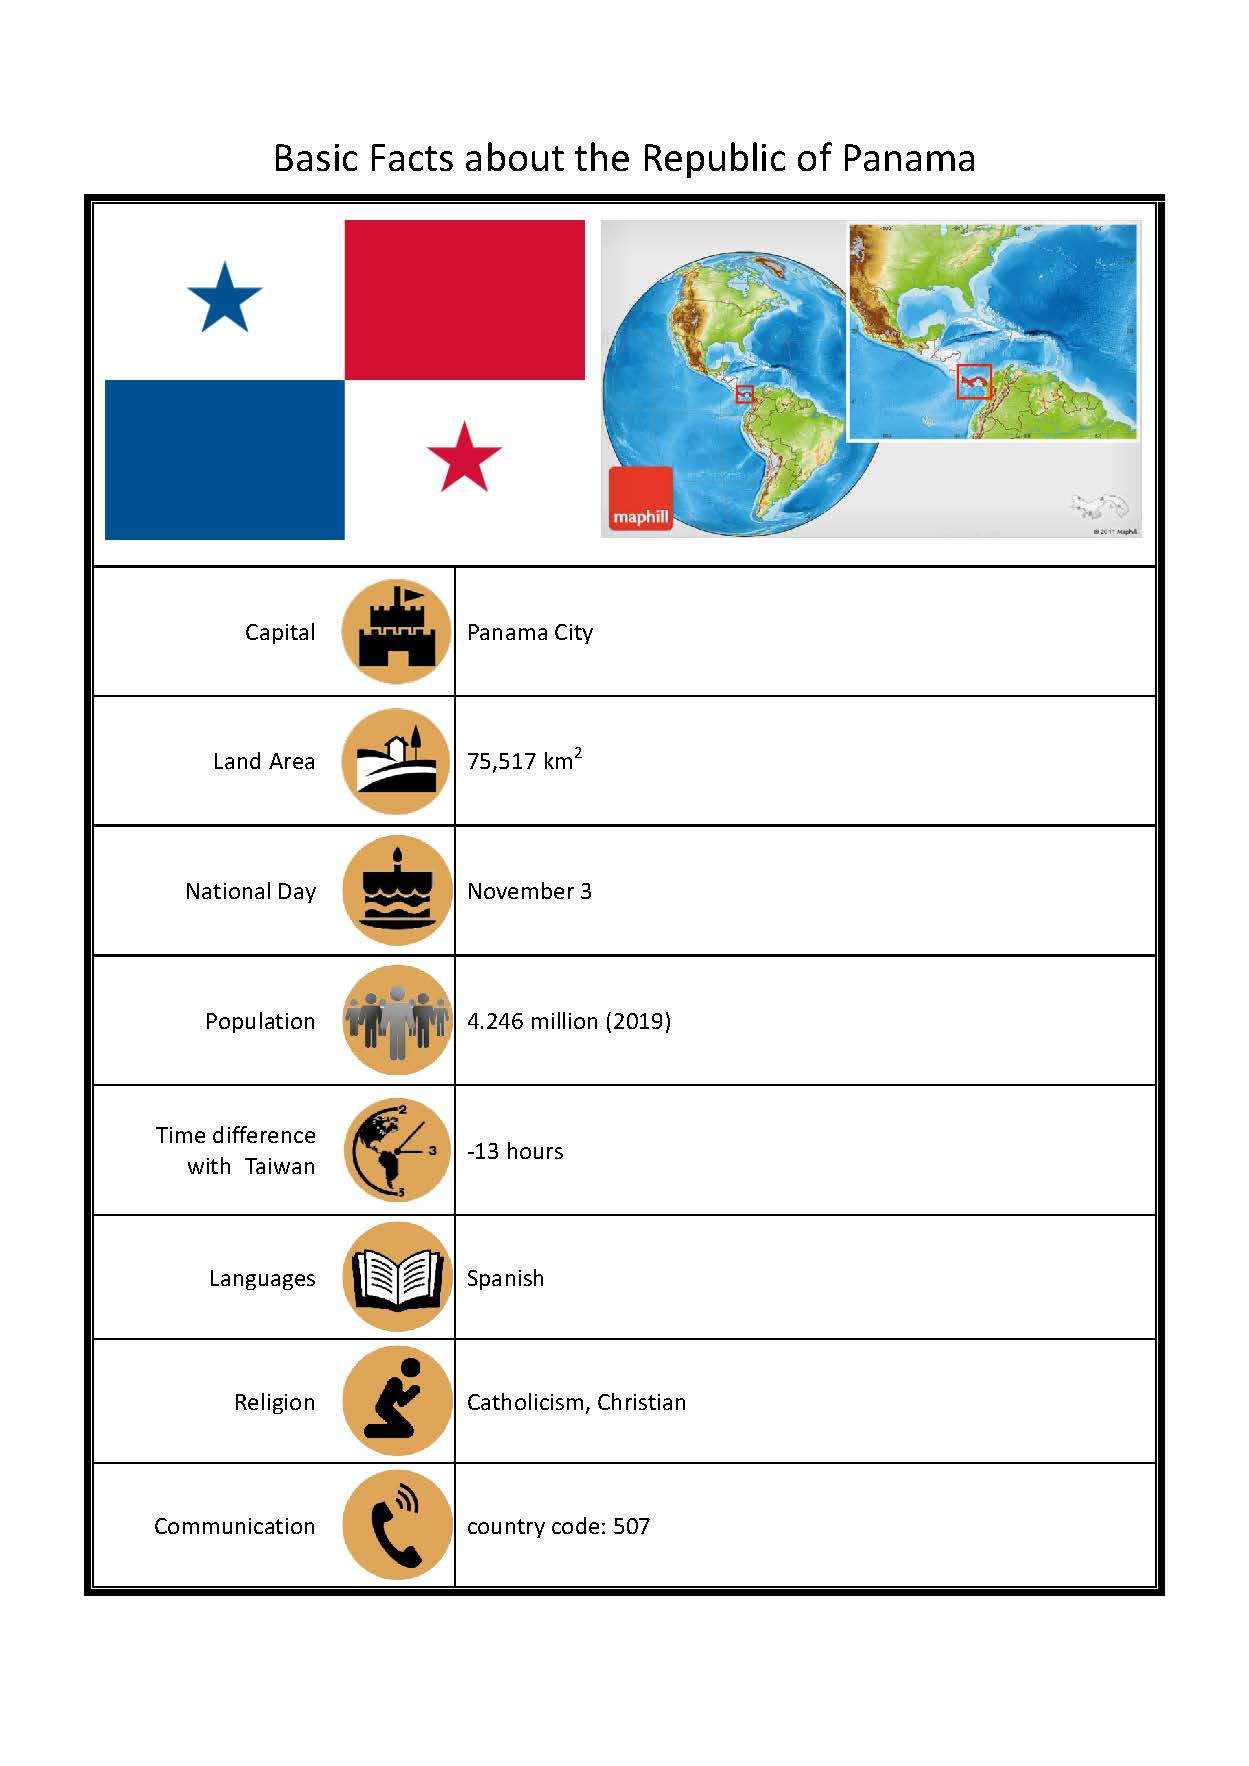 The Republic of Panama